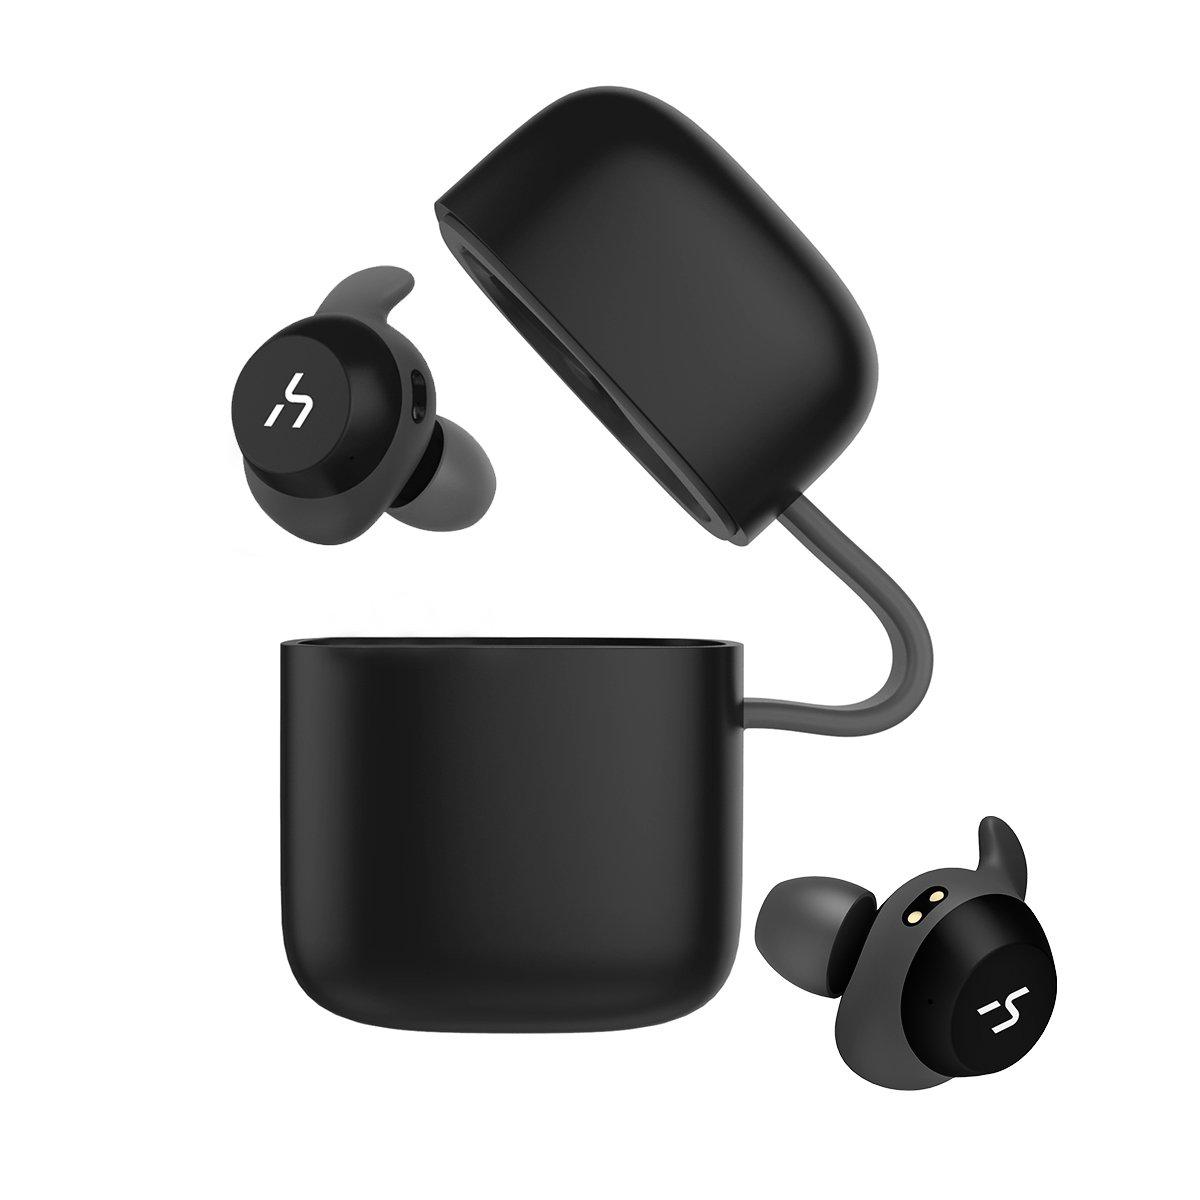 13c4066b30c HAVIT TWS Bluetooth In-ear Earphones True Wireless Stereo Earbuds, Storage  Box with Charging Function and 18-Hours Play Time, Waterproof and  Artificial ...